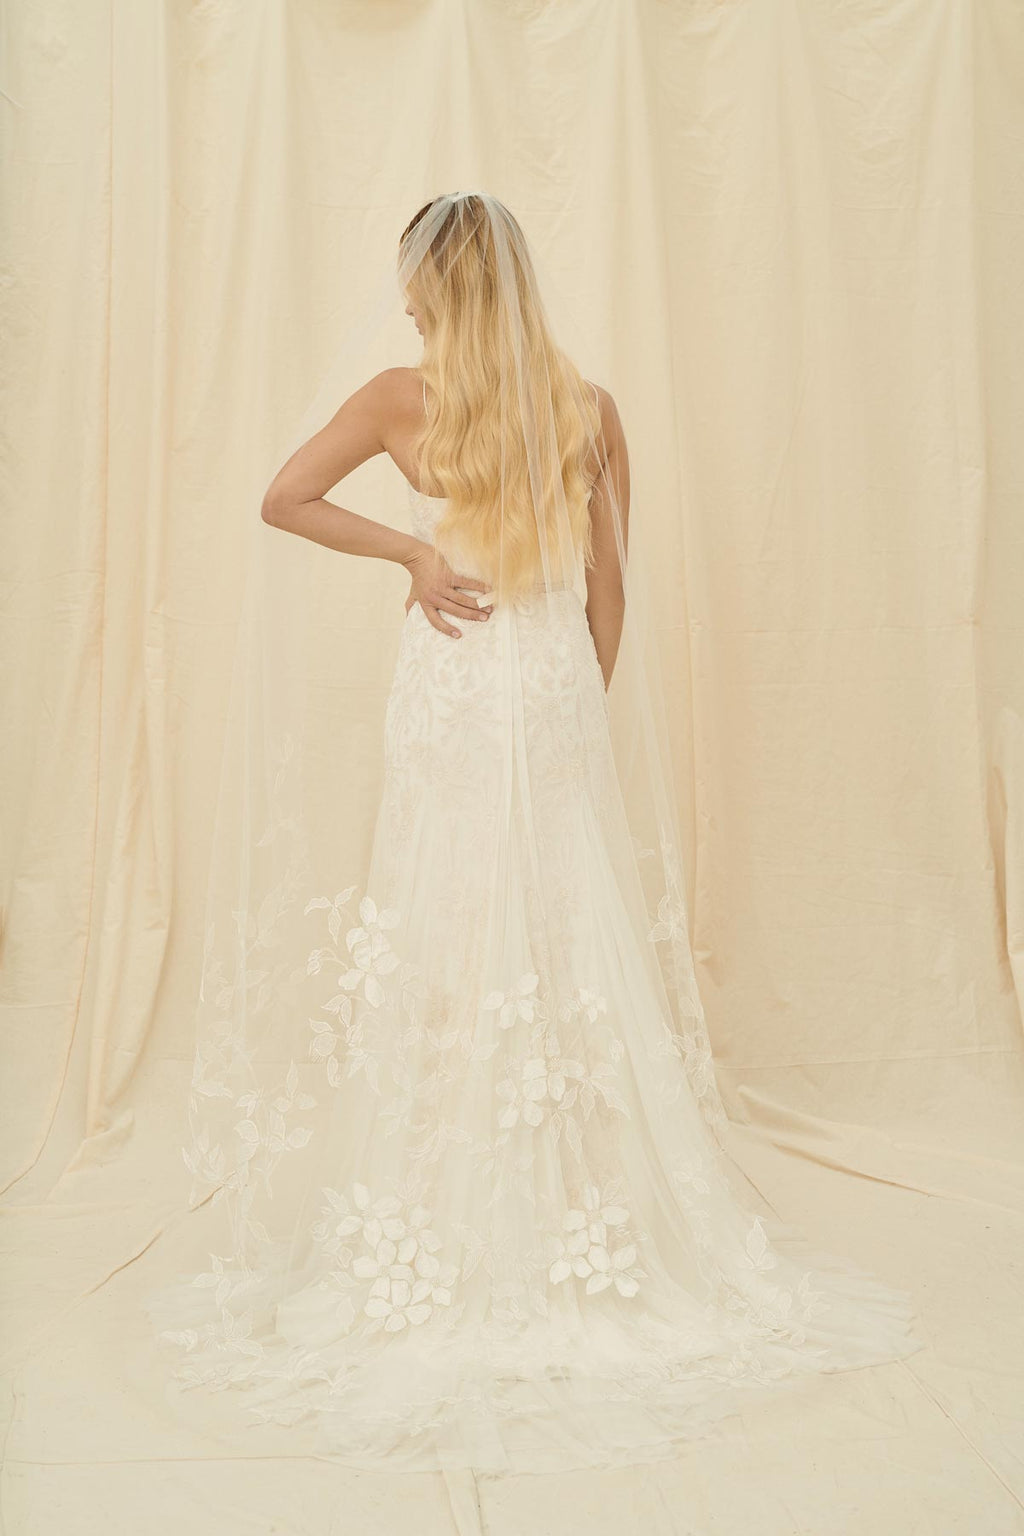 A simple bridal veil with floral embroidery on the bottom half of the soft tulle